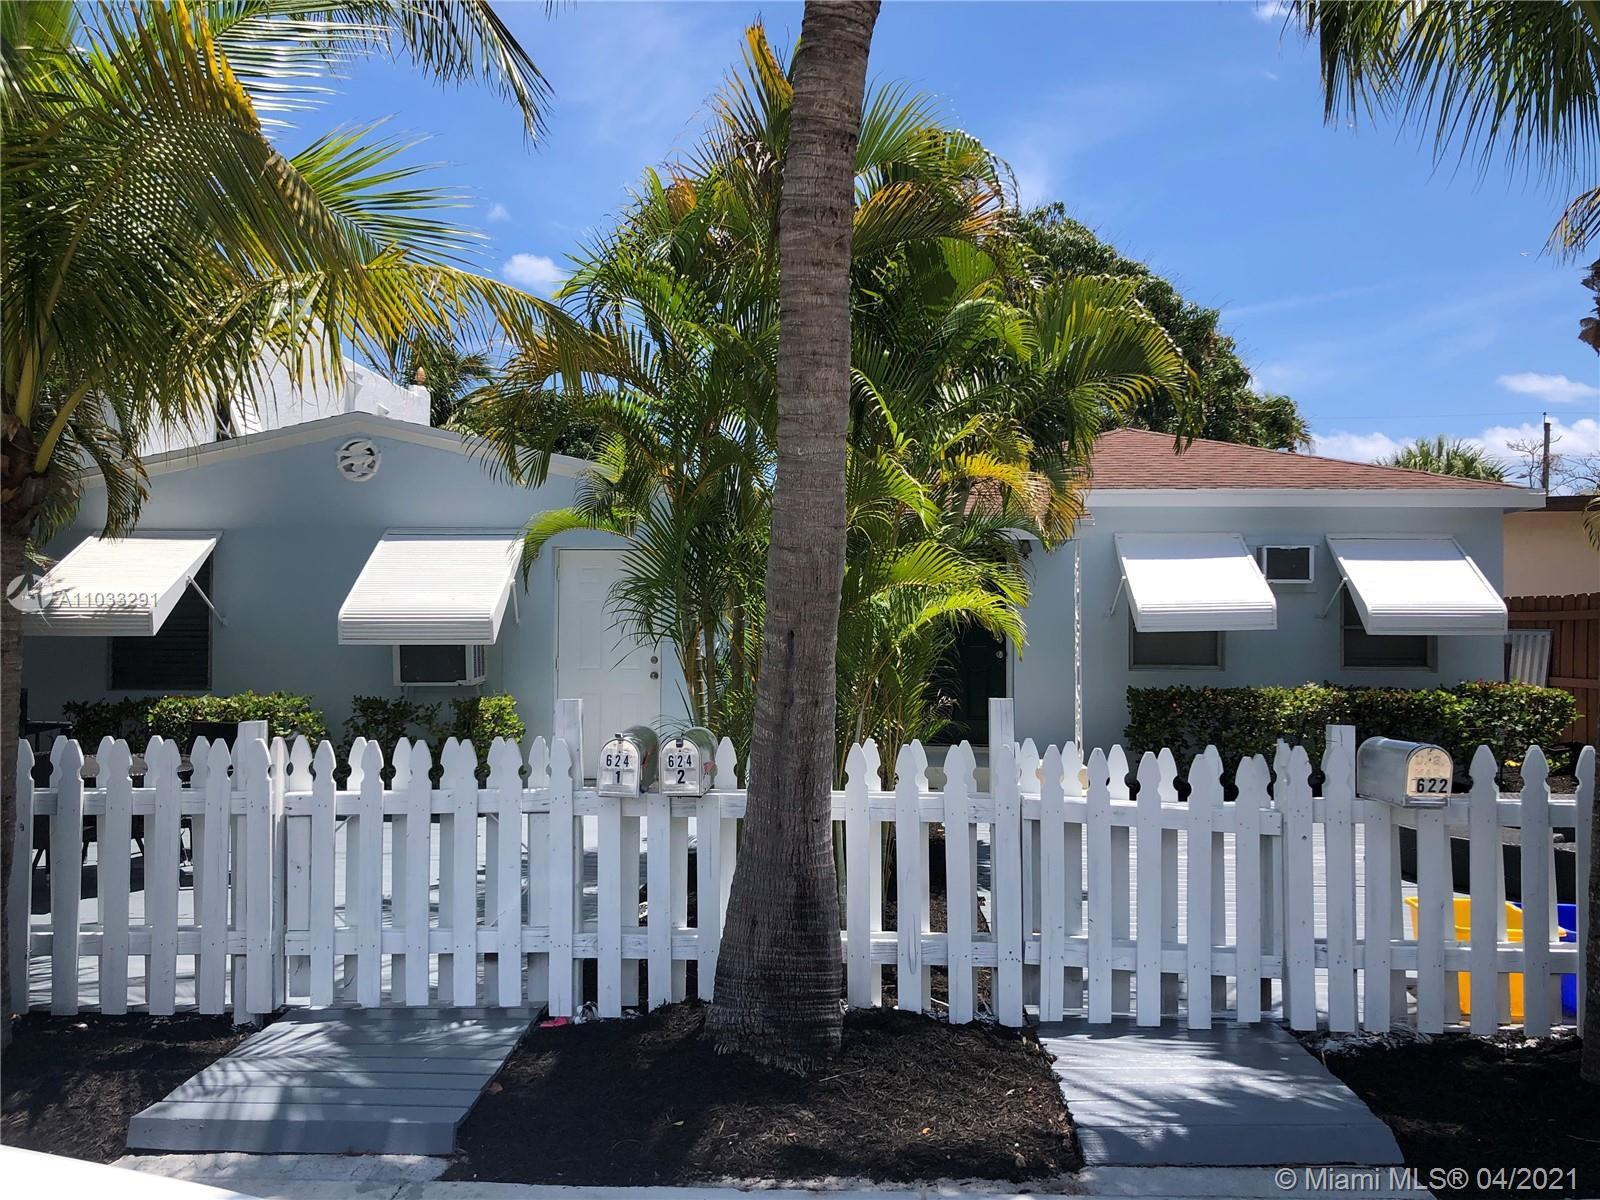 LAKE WORTH BEACH investment opportunity! 2 folios being sold together with 3 rental units consisting